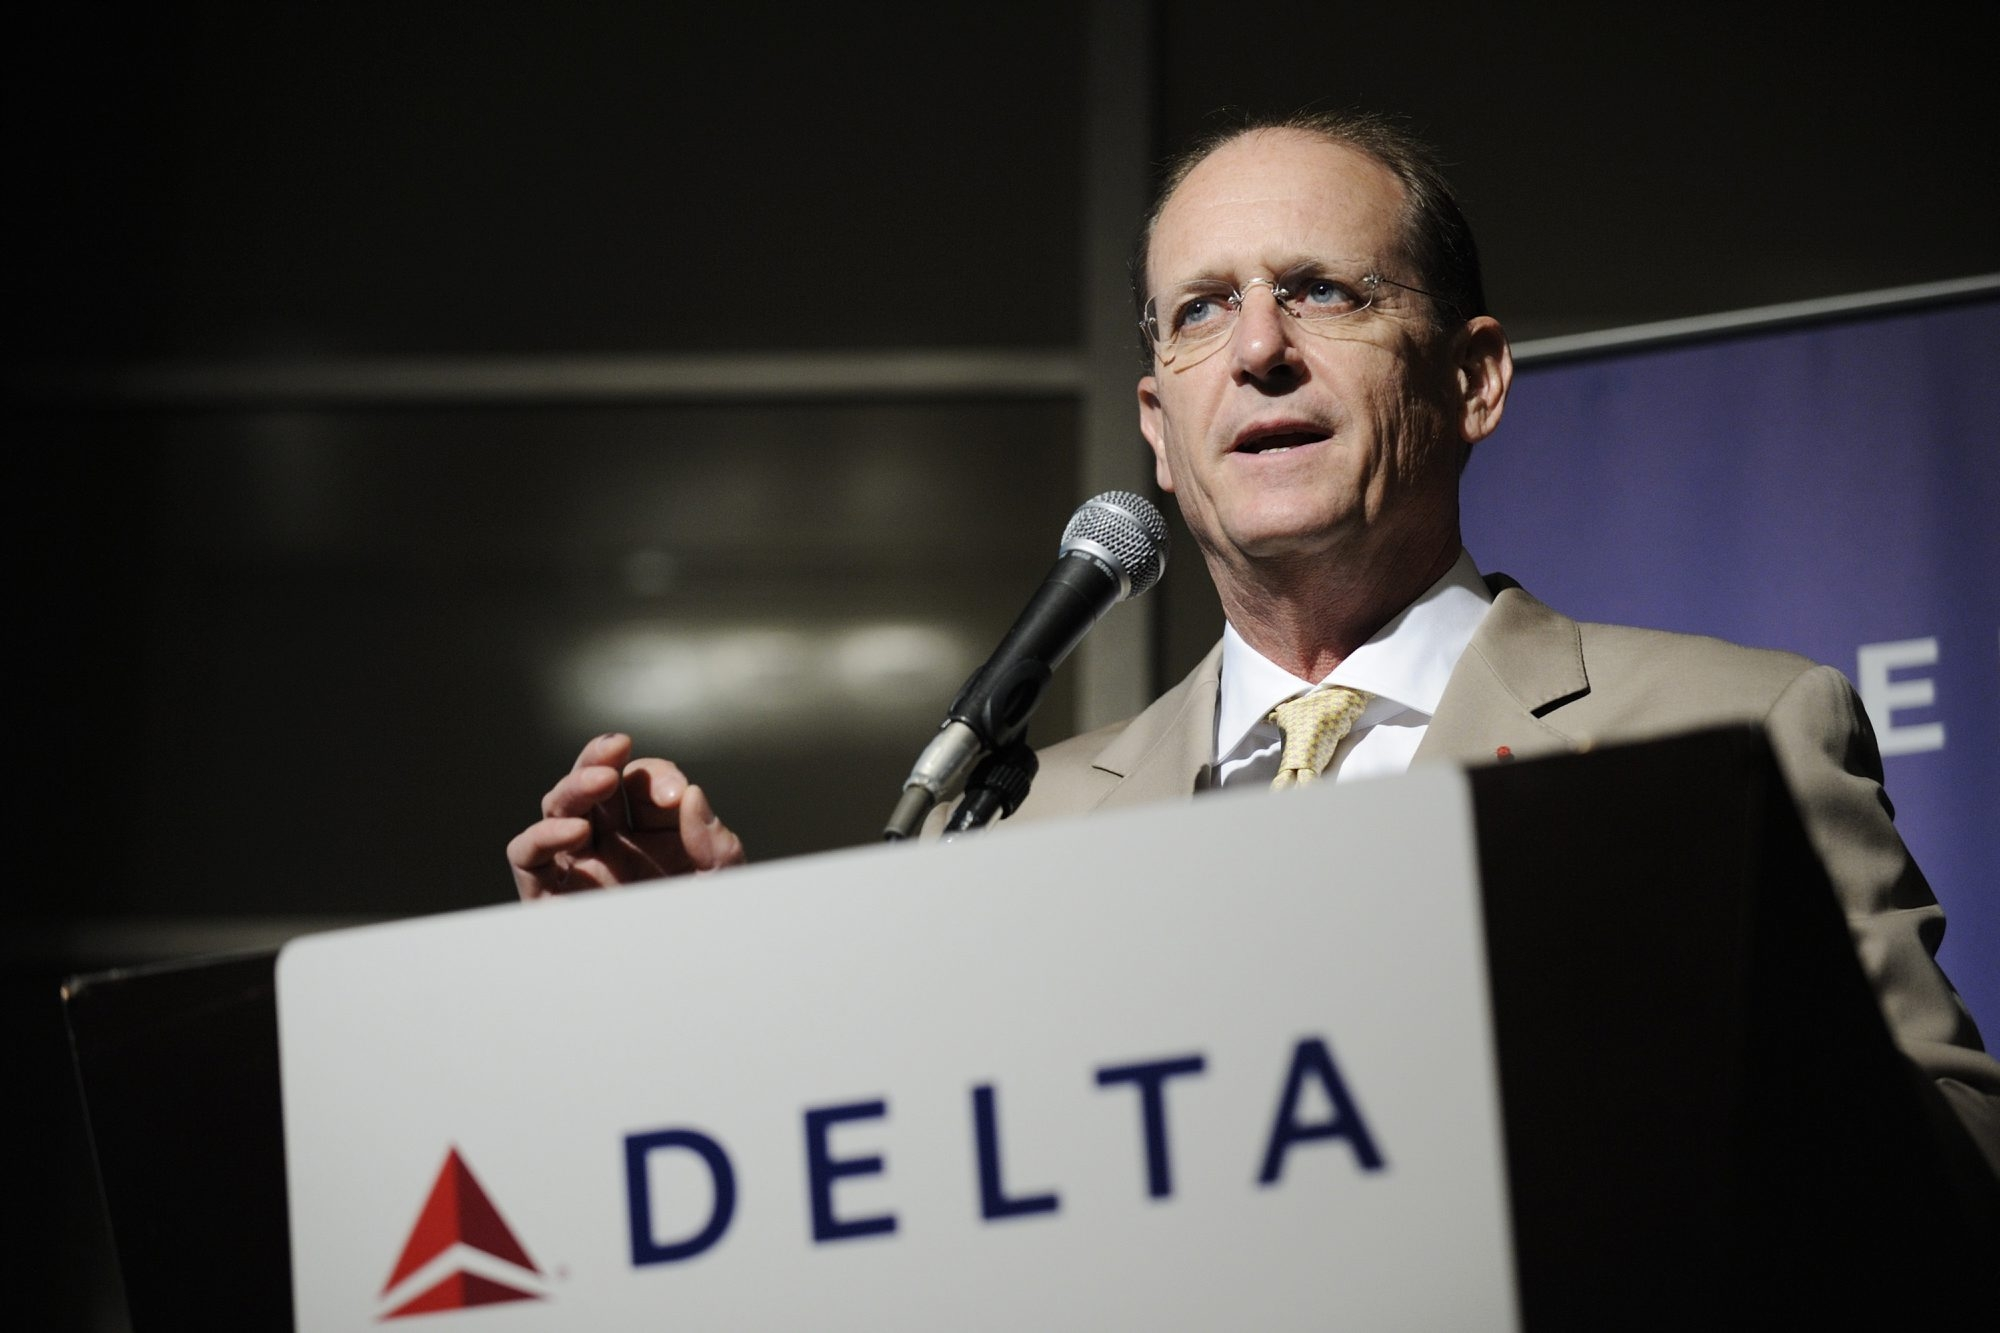 Richard Anderson, chief executive officer of Delta Air Lines Inc., speaks during a news conference in Tokyo, Japan, on Wednesday, July 31, 2013. Delta wants to move the company's Tokyo operations from Narita to Haneda, Anderson said. Photographer: Akio Kon/Bloomberg *** Local Caption *** Richard Anderson